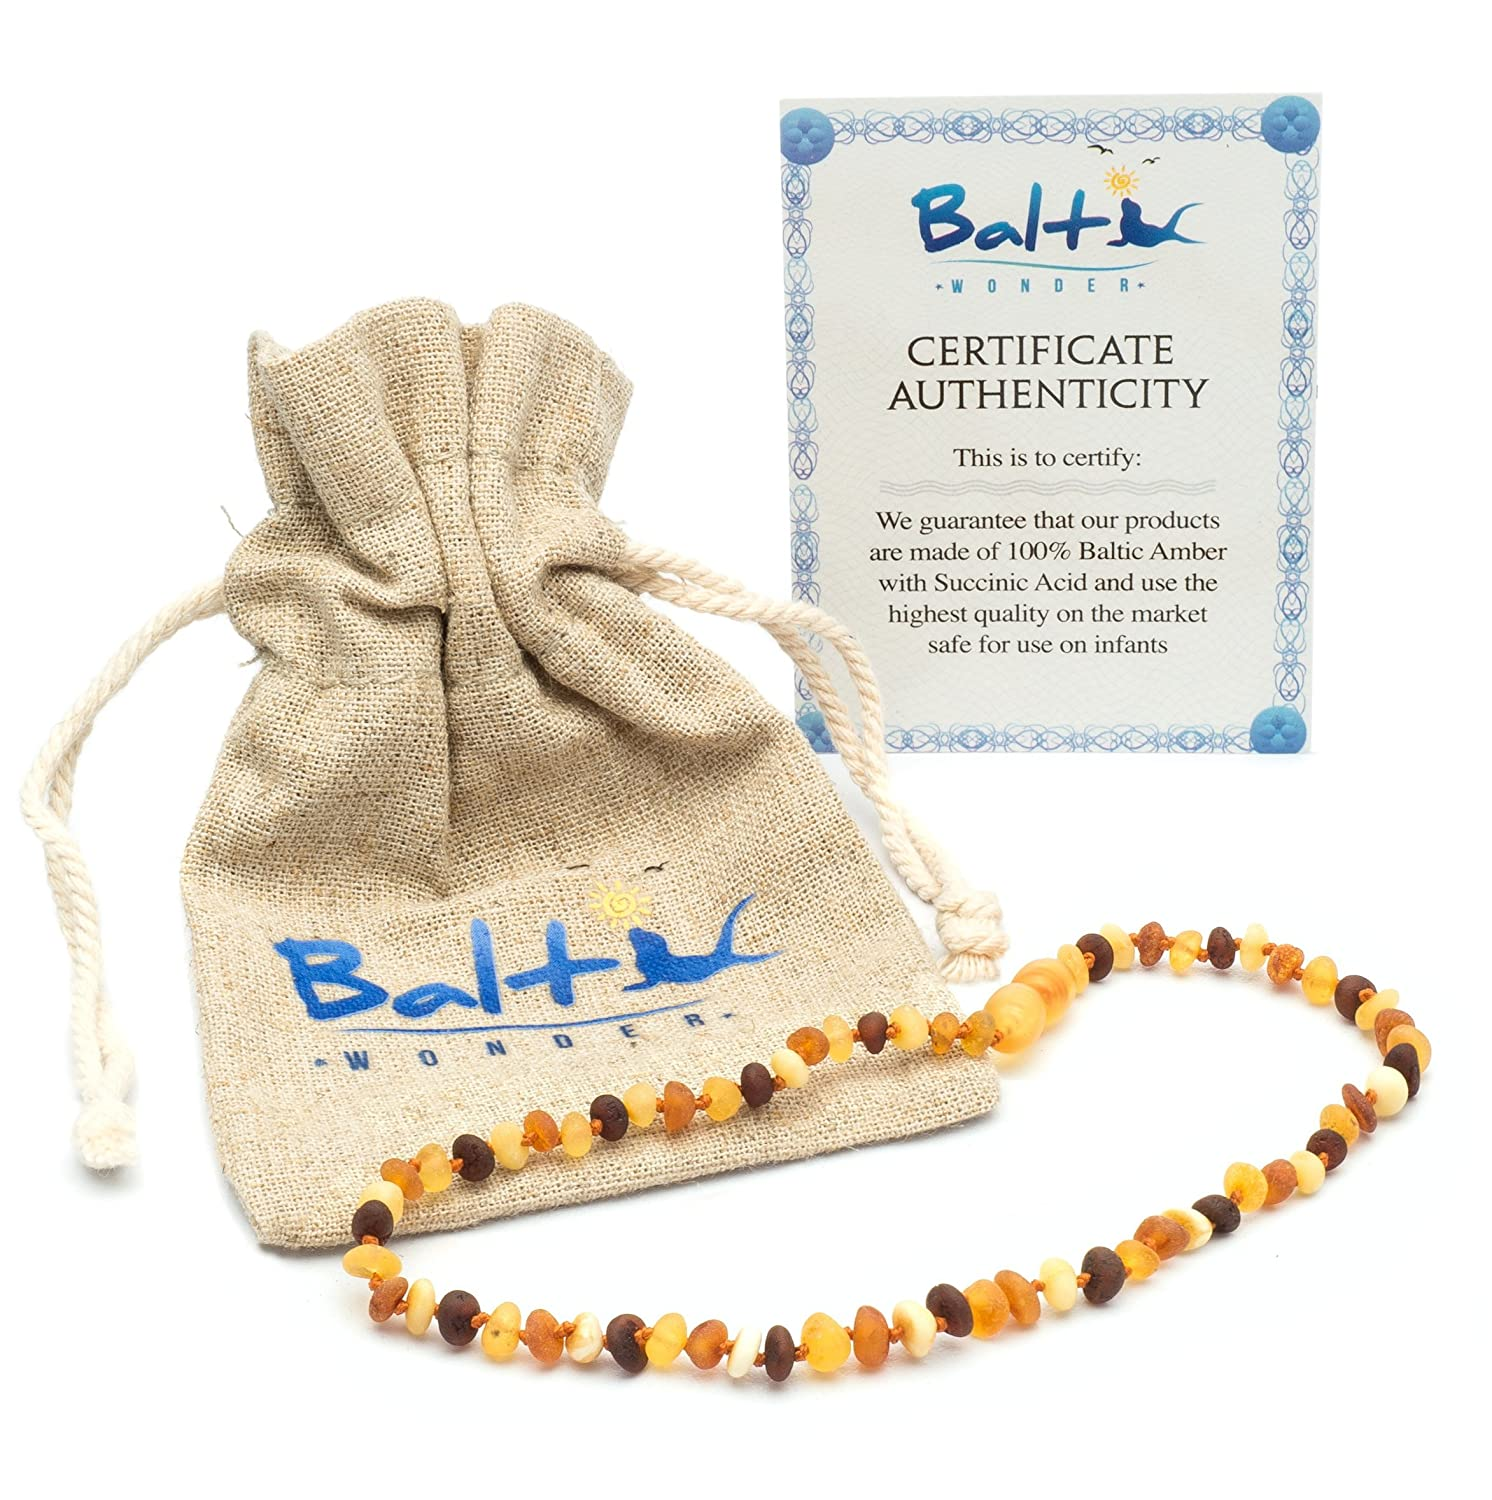 【限定価格セール!】 Raw Baltic Amber Teething Necklaces For Certificated Babies (Unisex) - For Reduce Anti Flammatory, Drooling & Teething Pain Reduce Properties - Multi 4 Colors UNPOLISHED Natural Certificated Oval Baltic Jewelry with the Highest Quality Guaranteed. Easy to Fastens with a Twist-in Screw Clasp Mothers Approved Remedies! by Baltic Wonder B00M5CYB0Q, オオナンチョウ:6d6dceaa --- a0267596.xsph.ru